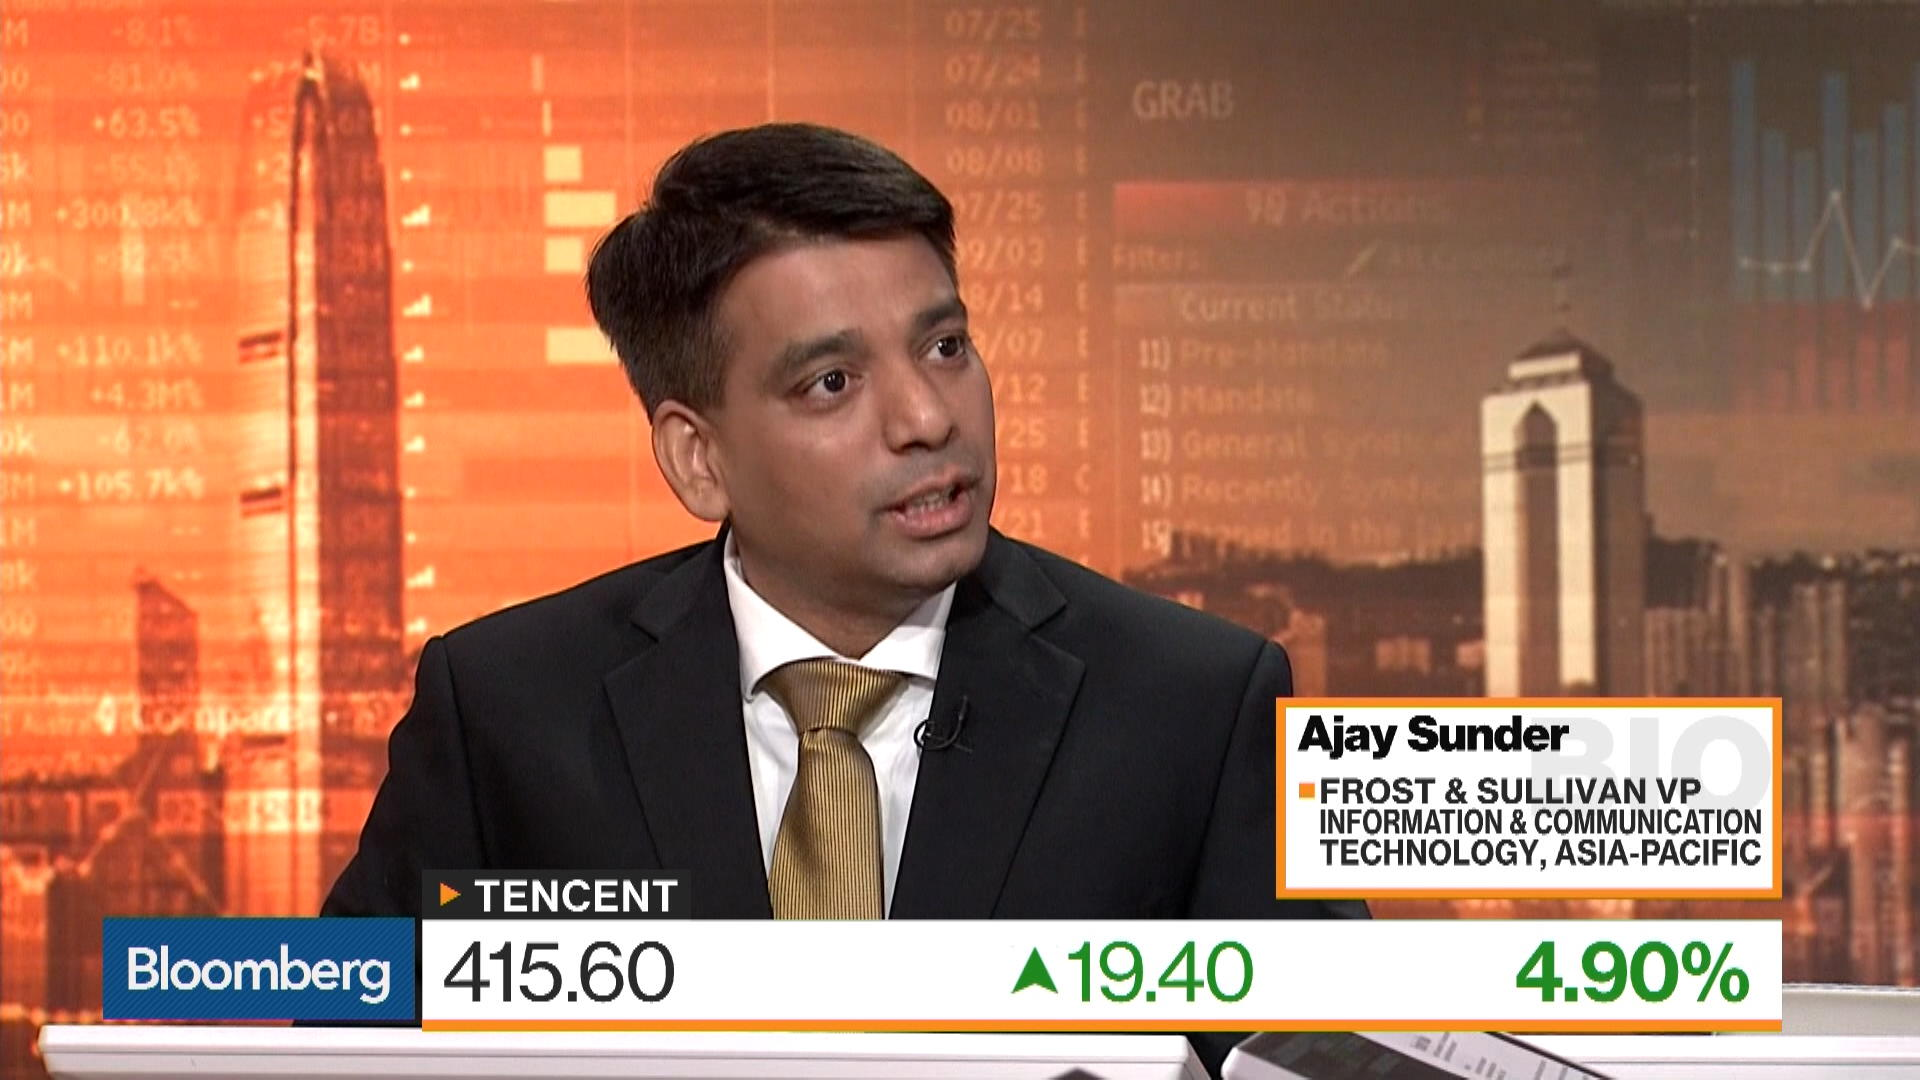 Frost & Sullivan's Ajay Sunder weighs in on Tencent's record quarterly profit